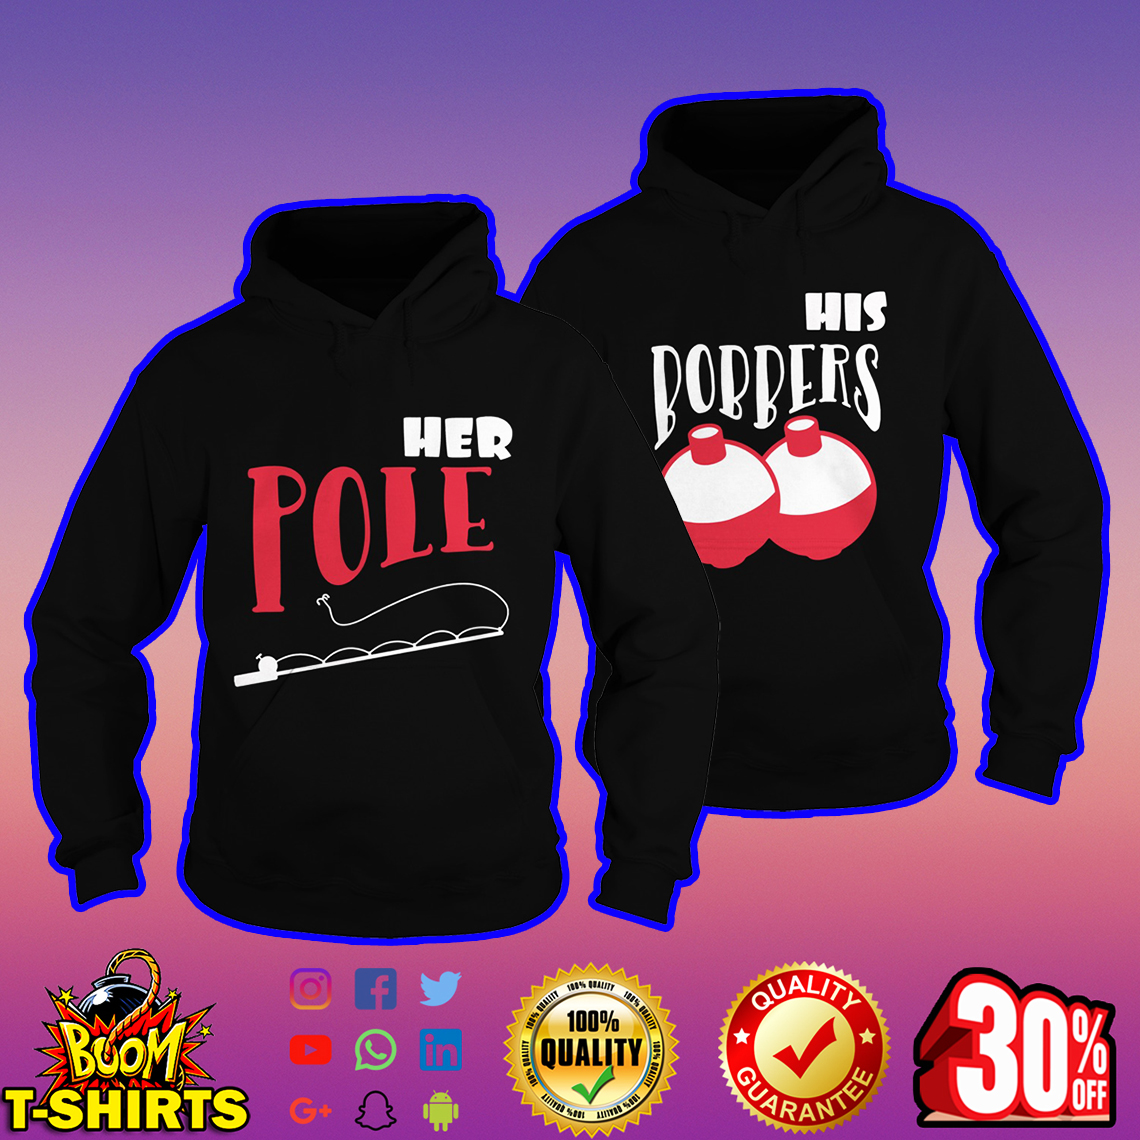 Her Pole-His bobbers hoodie